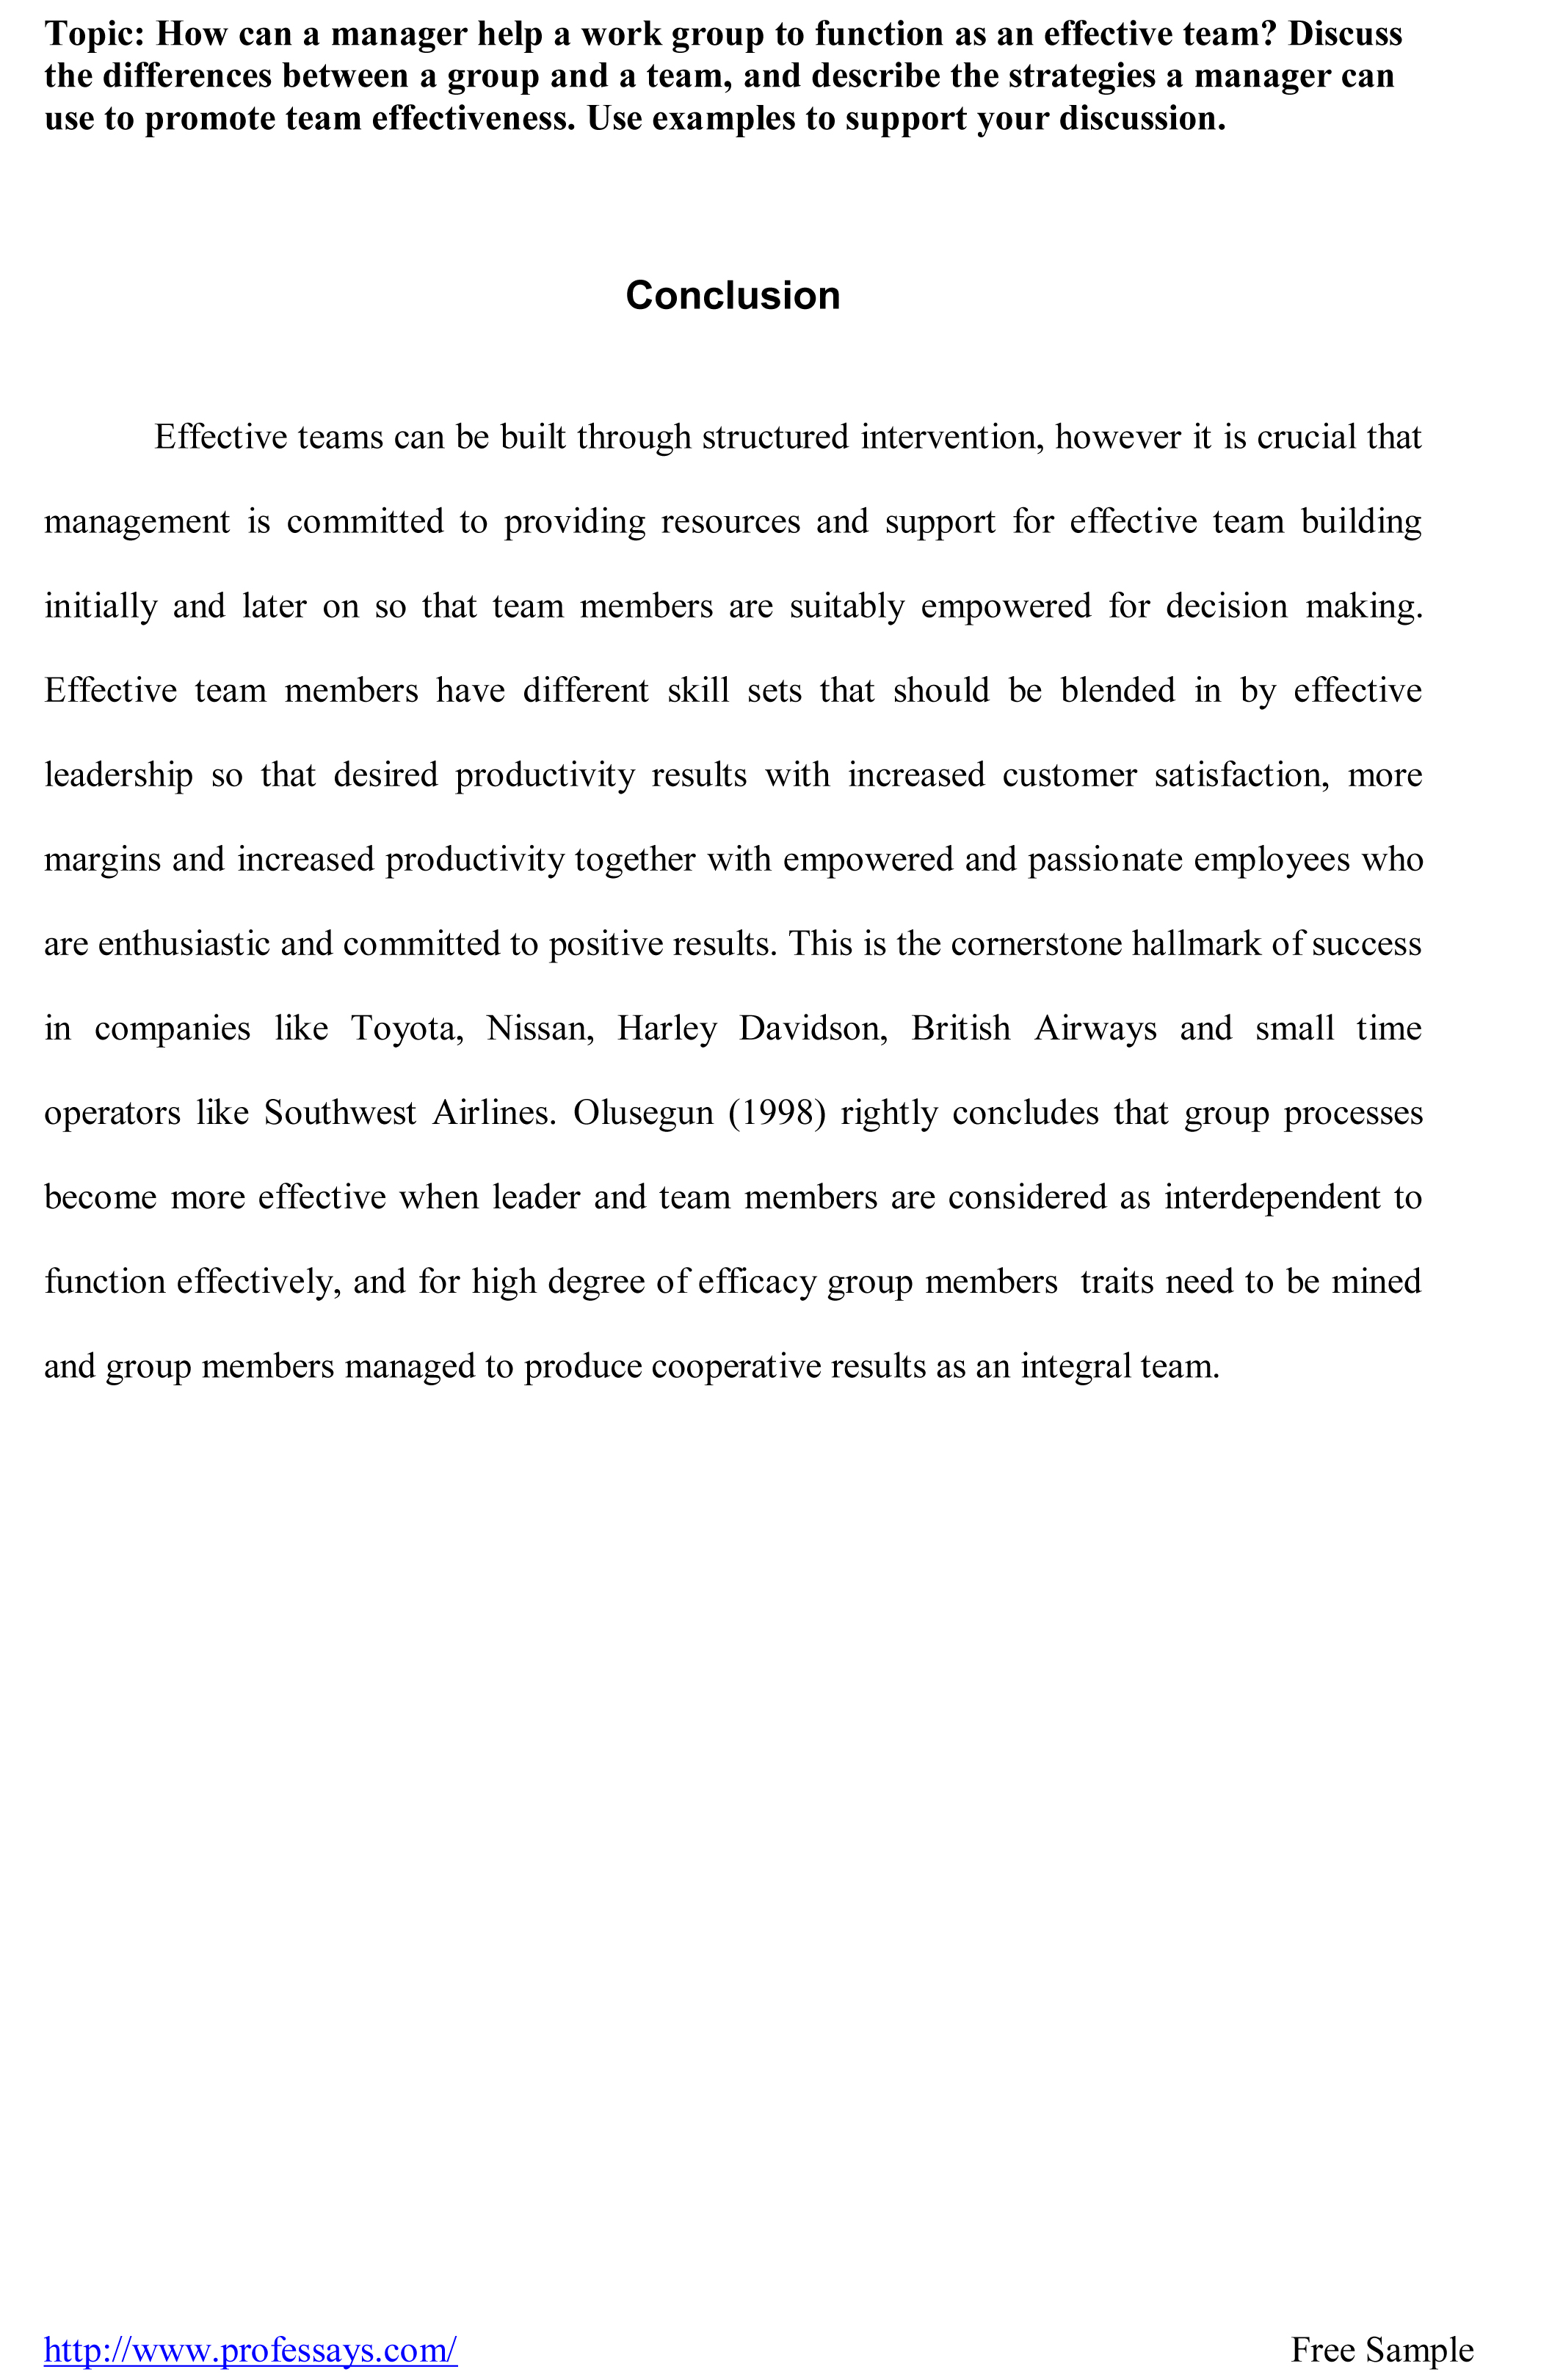 006 Help With Research Paper Conclusion Sample For Unique A Writing Outline Me Write Free Full